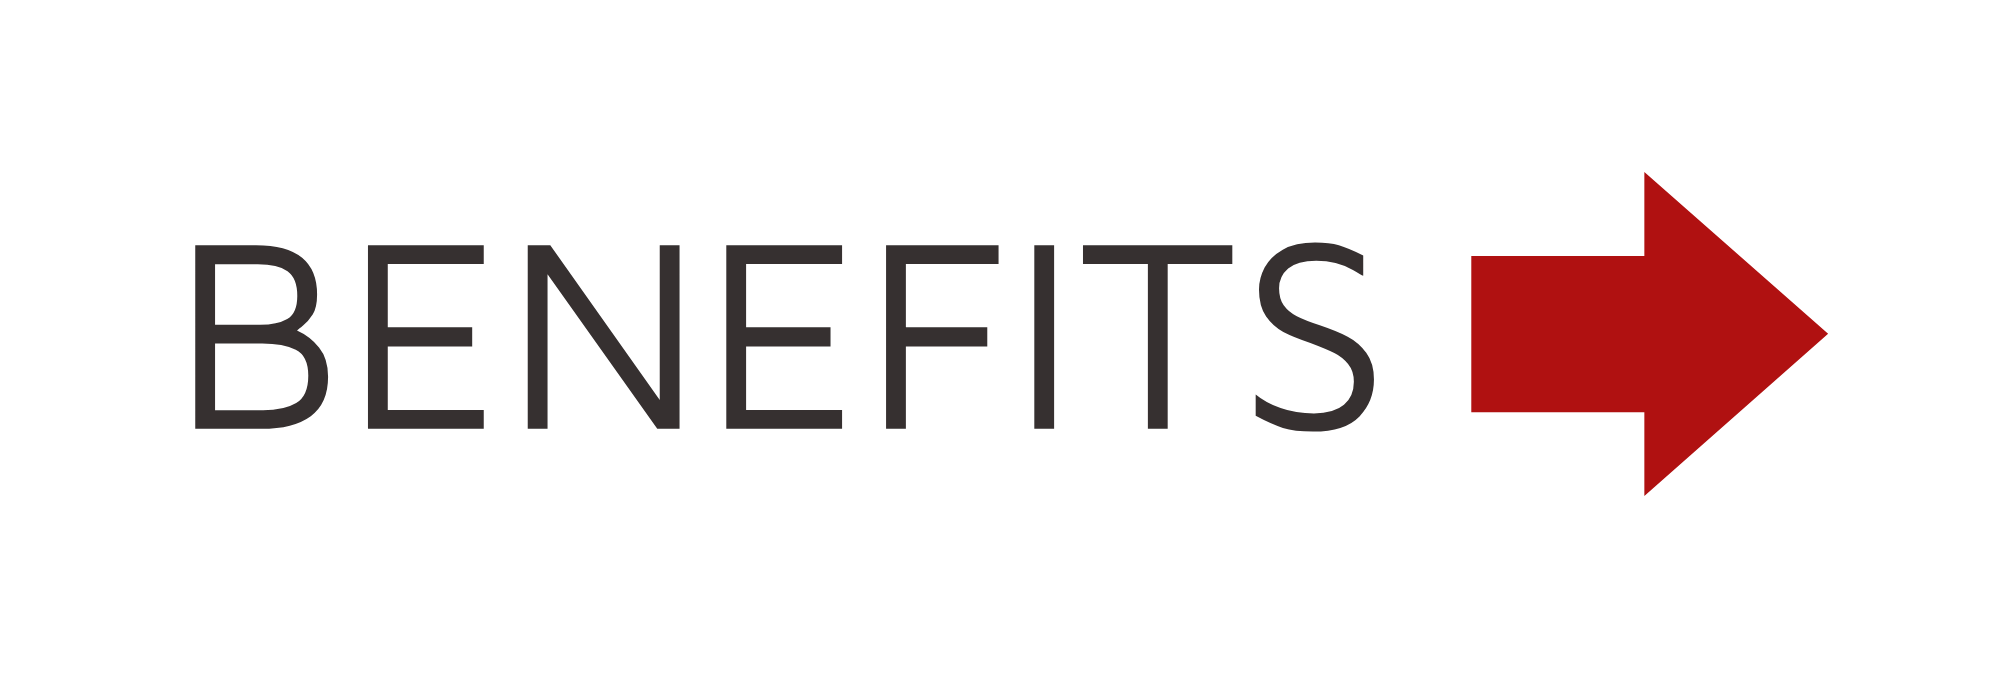 BENEFITS-logo.png